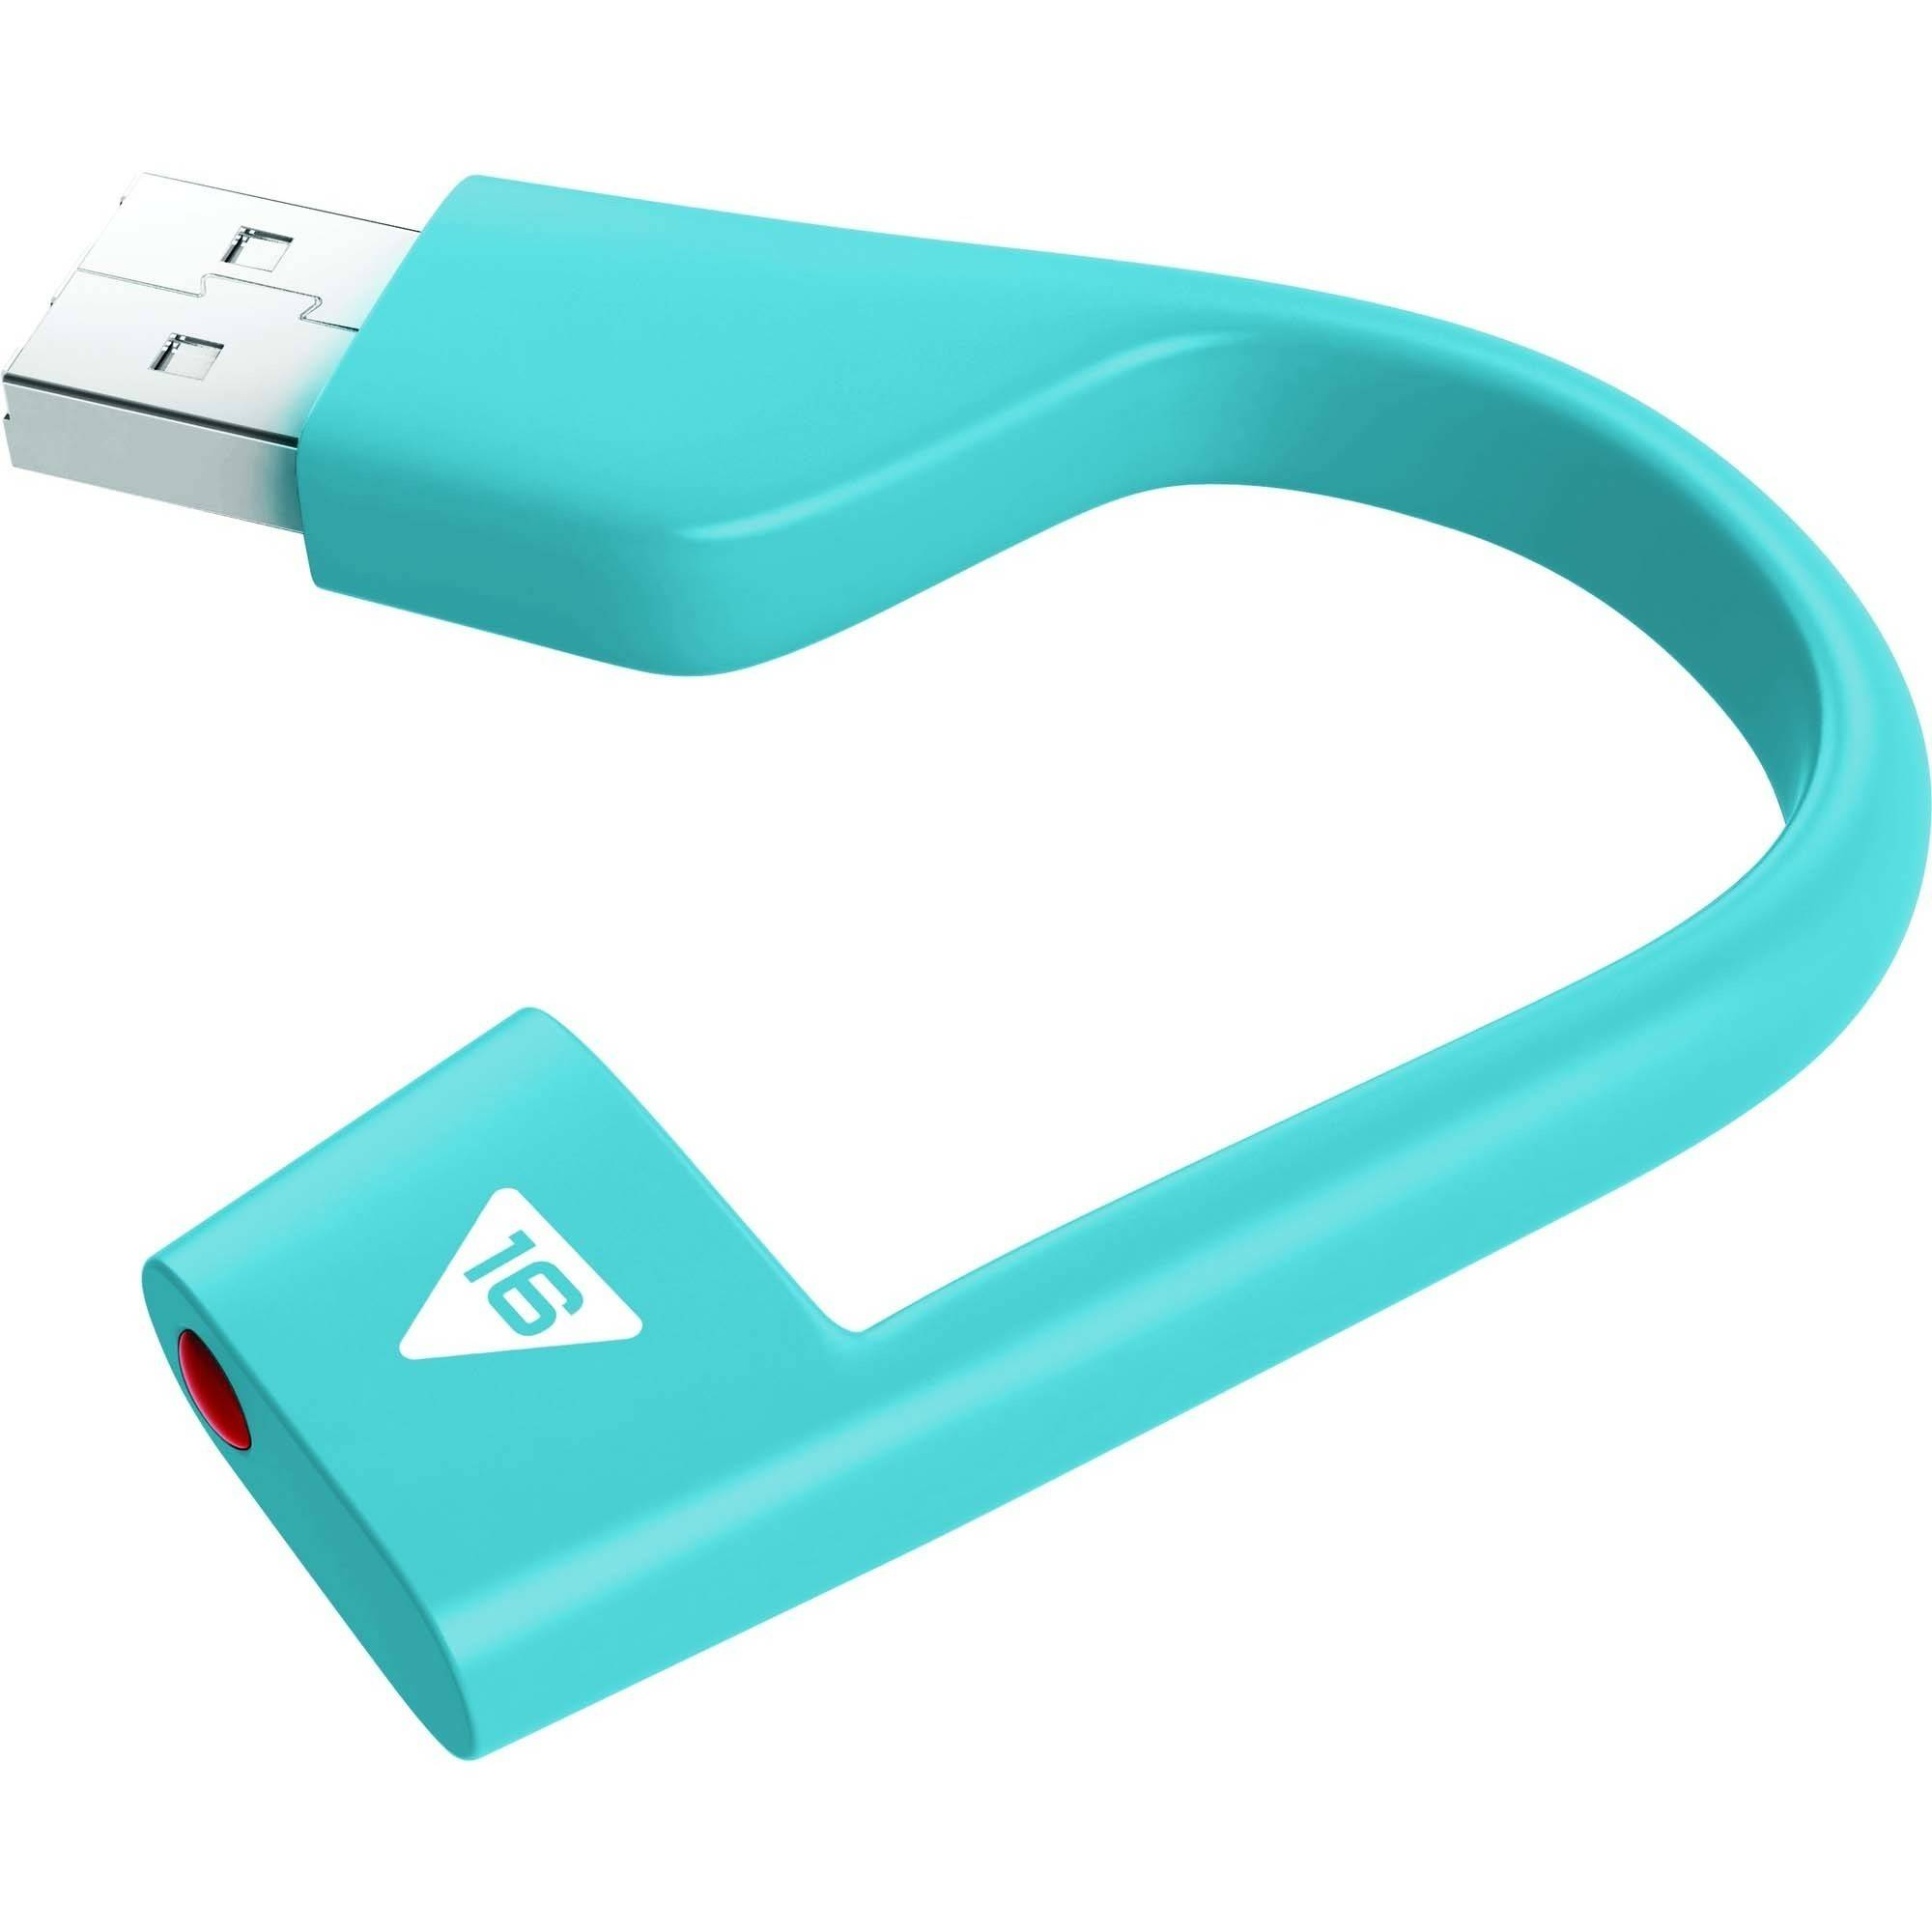 EMTEC D200 USB 2.0 Hook Flash Drive